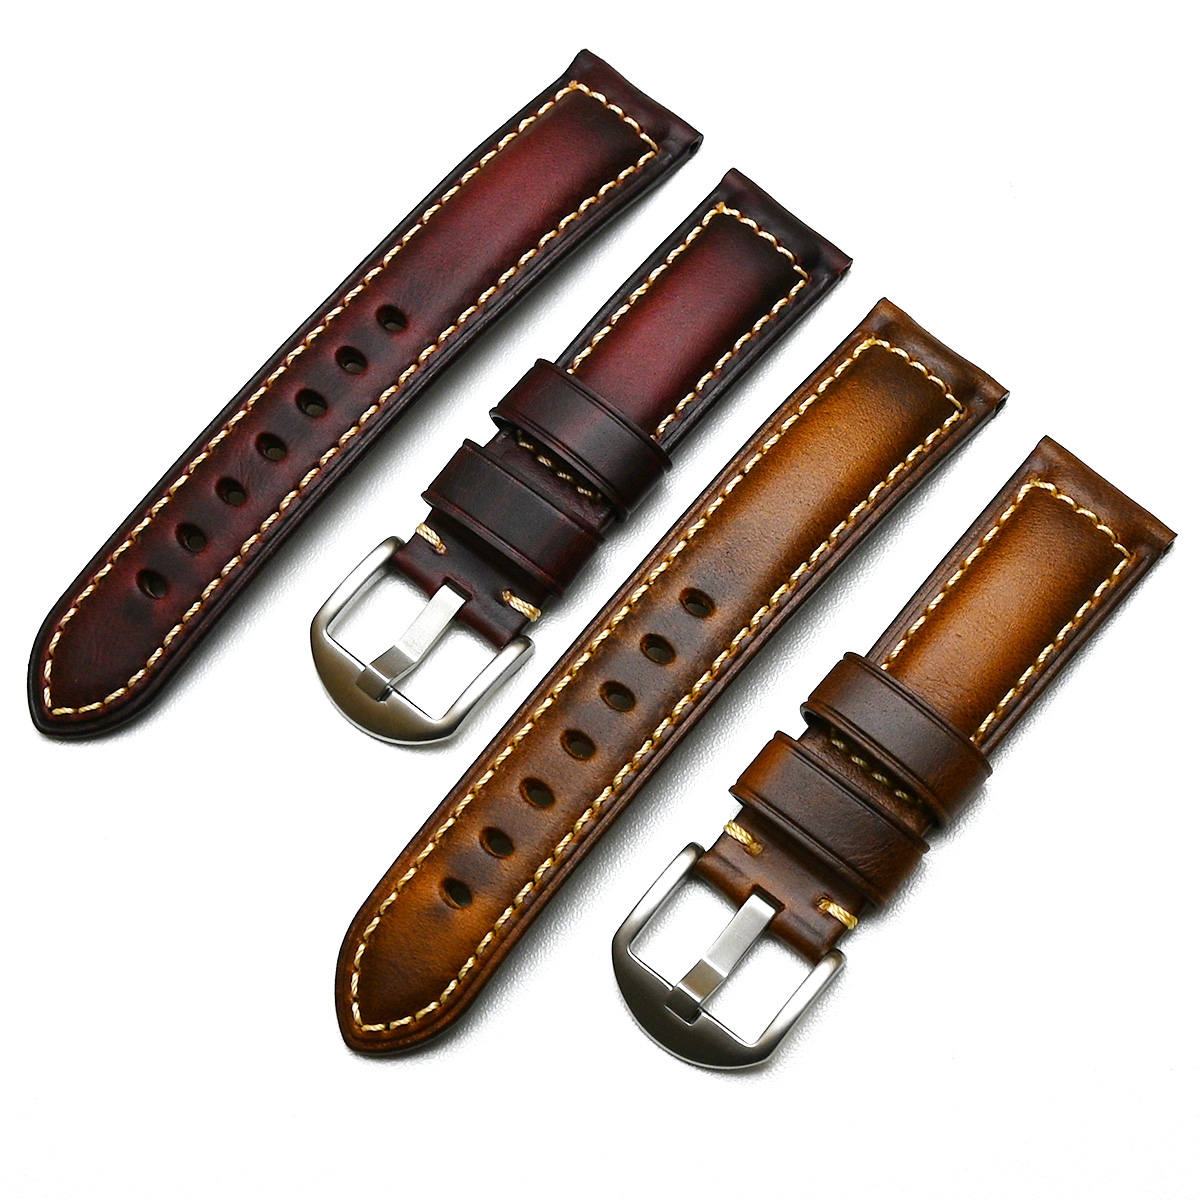 20mm 22mm 24mm 26mm Handmade Italian Brown Black Blue Vintage Genuine Leather Watch Band Strap for panerai HUAWEI Men Watchband